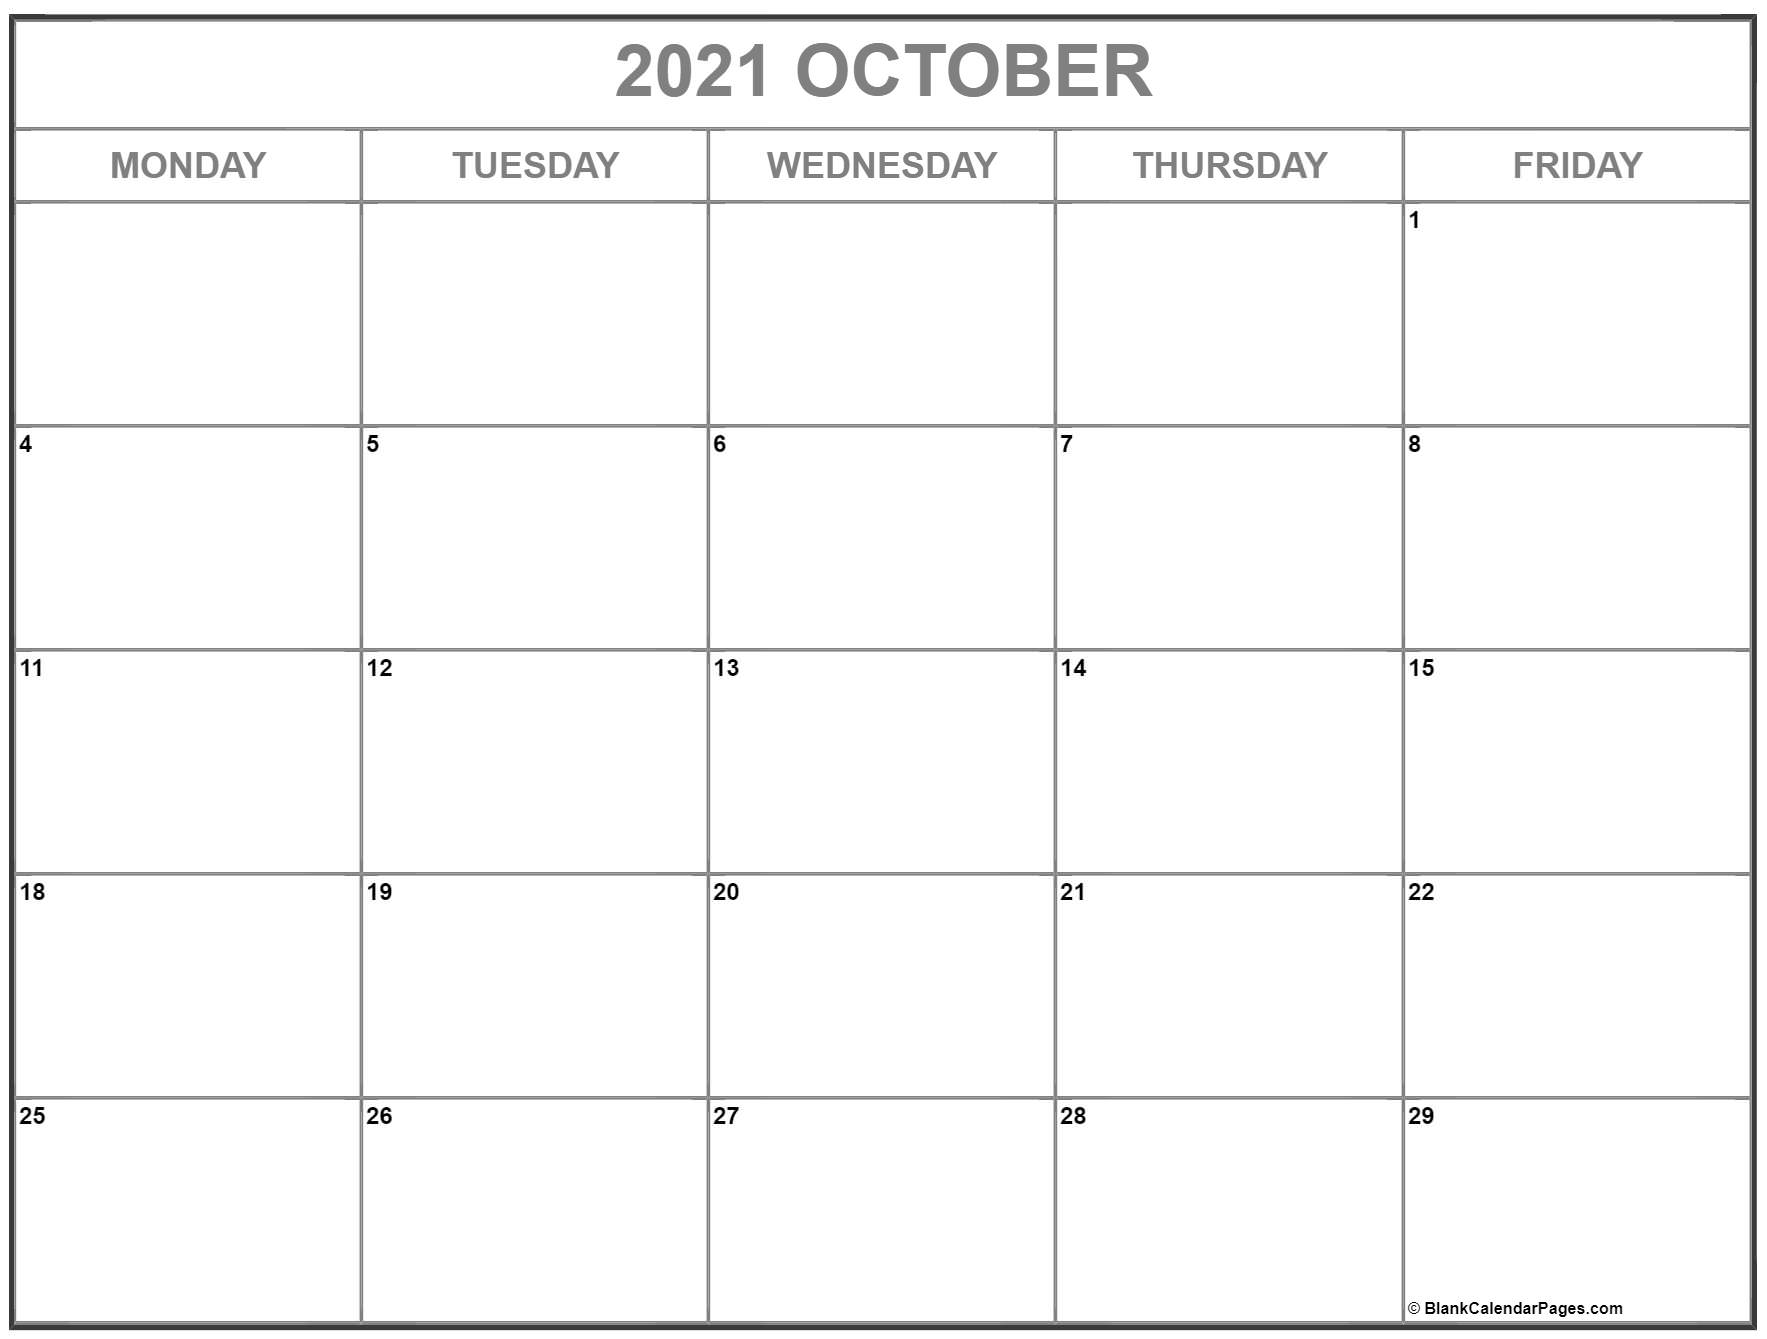 October 2019 Monday through Friday calendar.